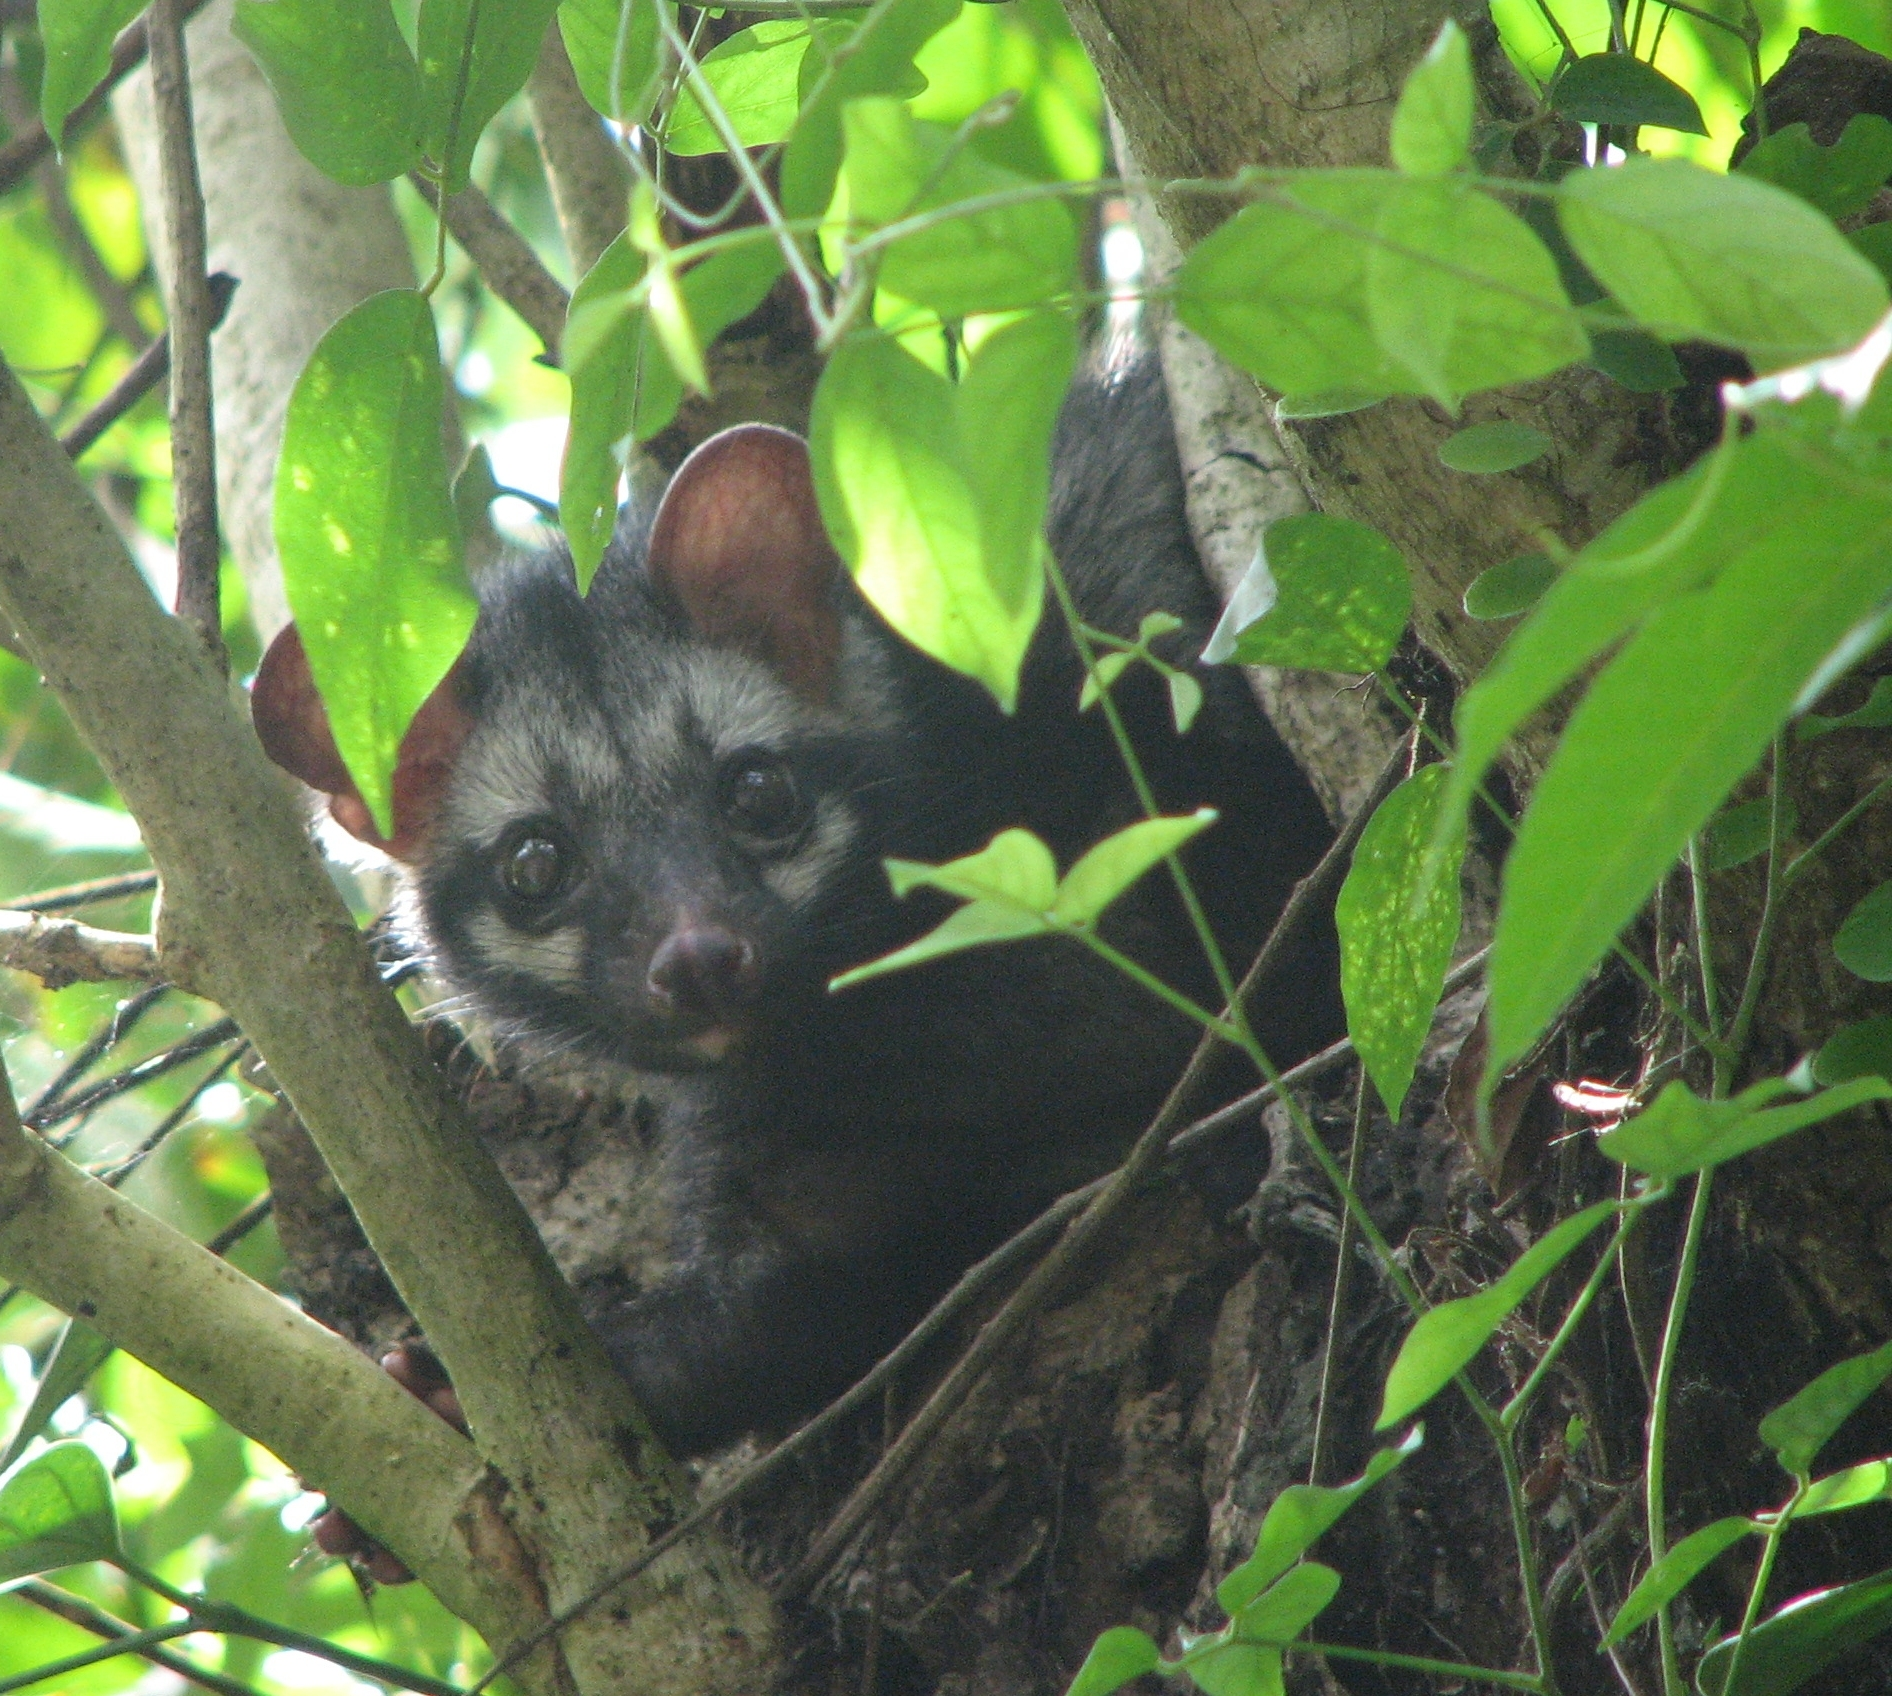 Asian palm civets are believed to lead a solitary lifestyle